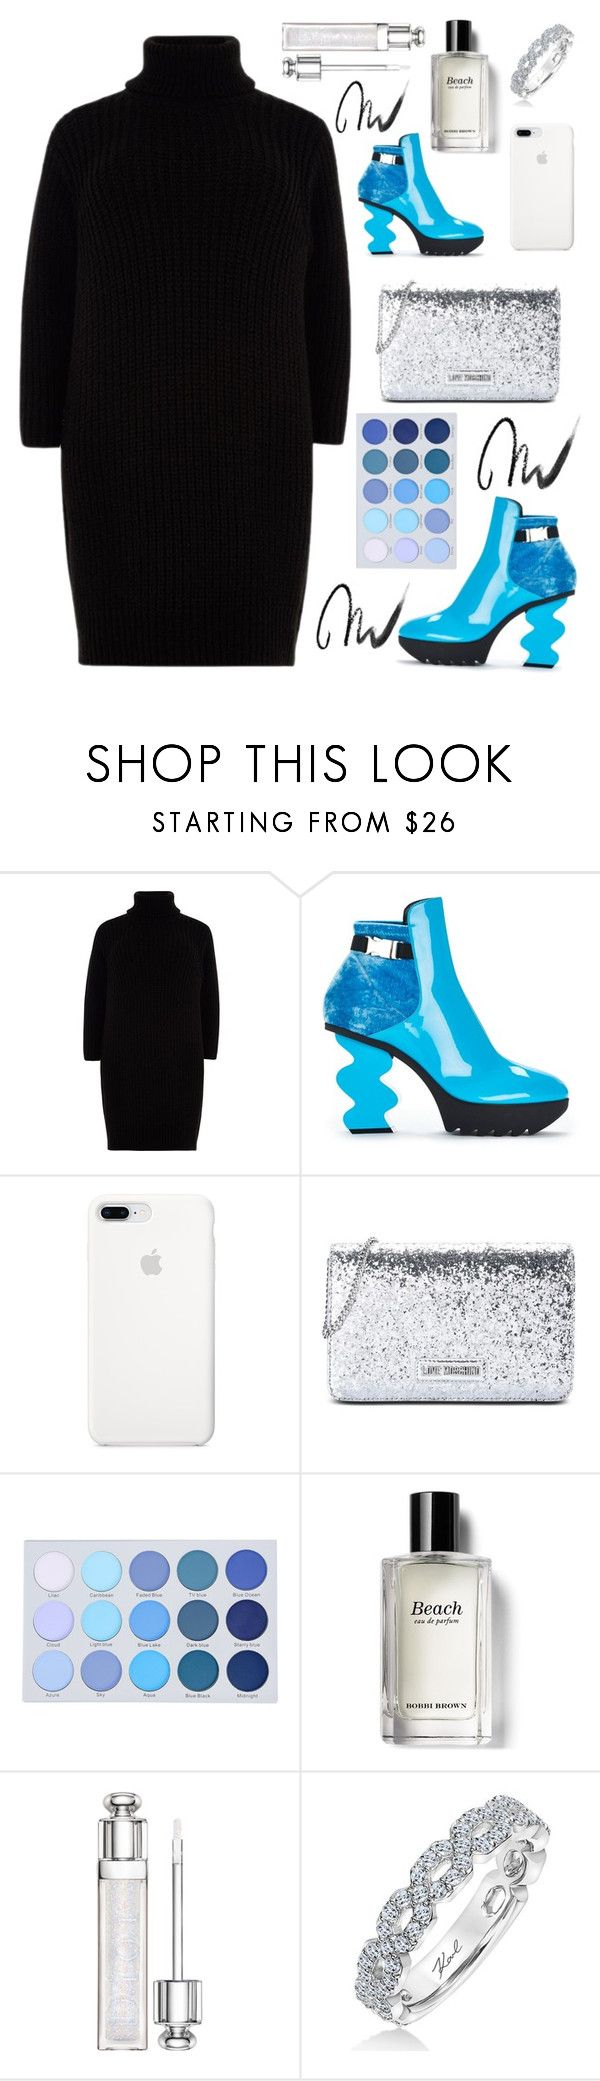 """""""Ankle Boots"""" by heythatsalya ❤ liked on Polyvore featuring River Island, Love Moschino, Bobbi Brown Cosmetics, Karl Lagerfeld and Maybelline"""